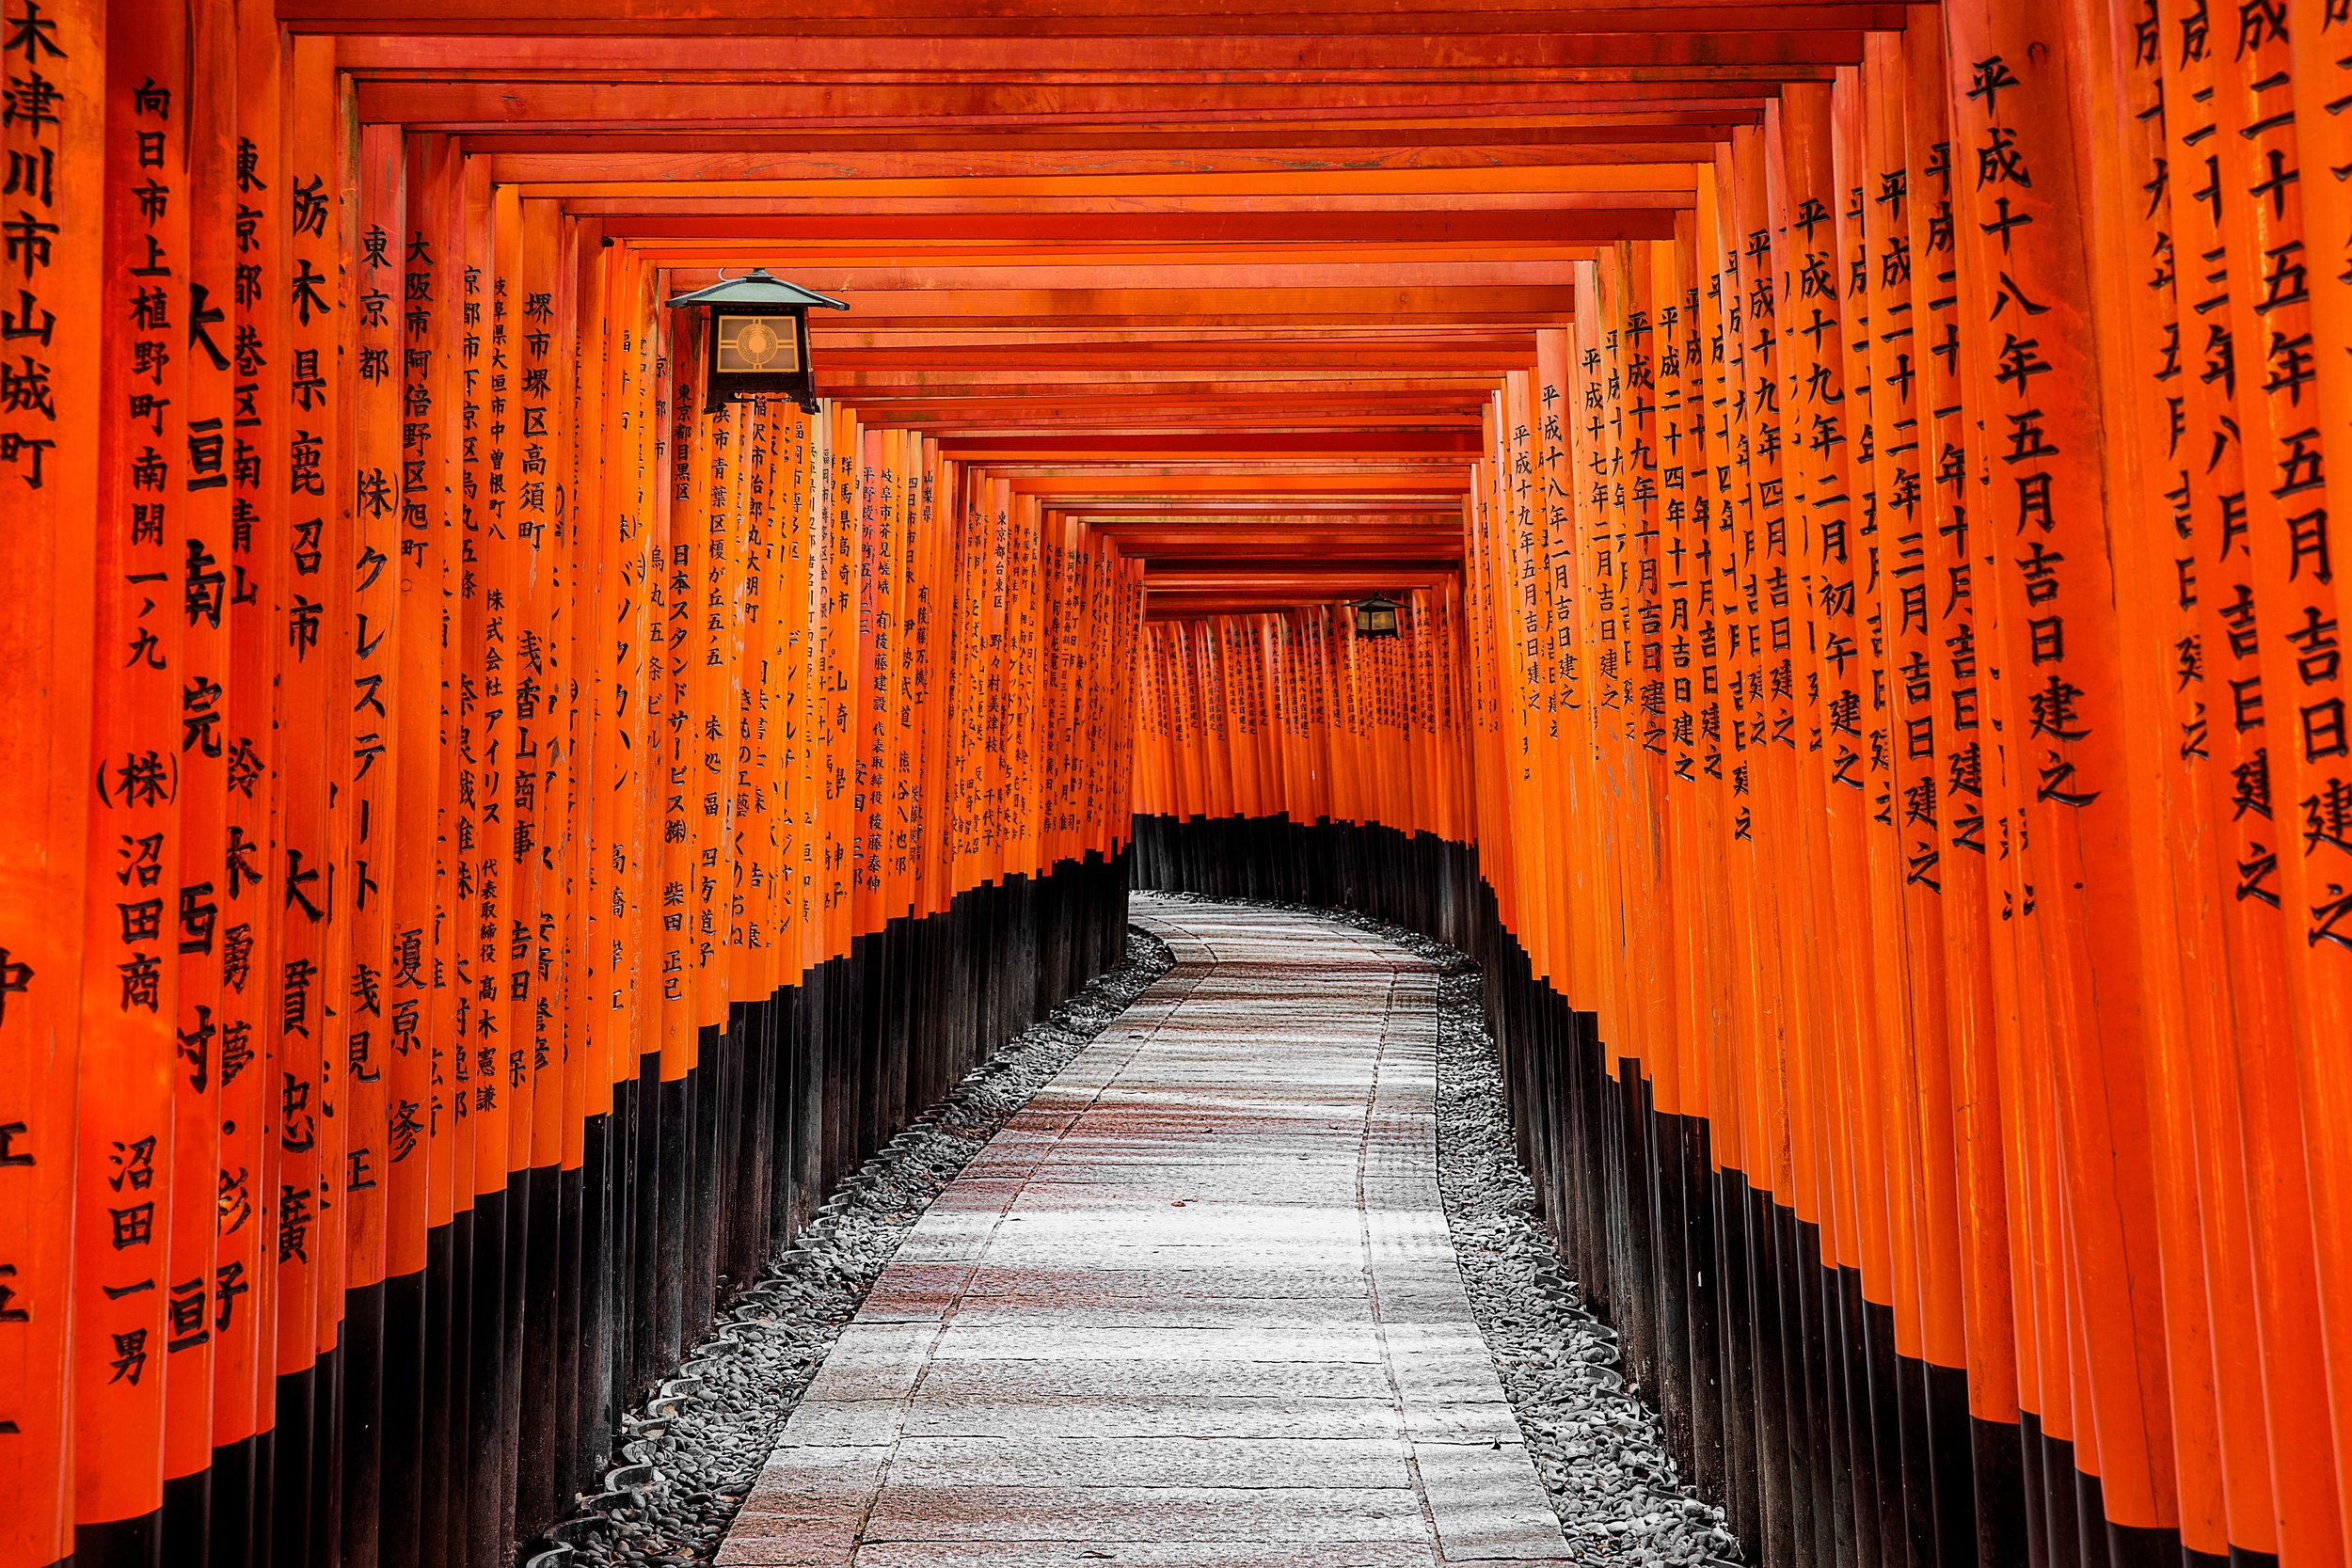 3 - Japan, Kyoto, Fushimi Inari, Red Gate (2).jpg